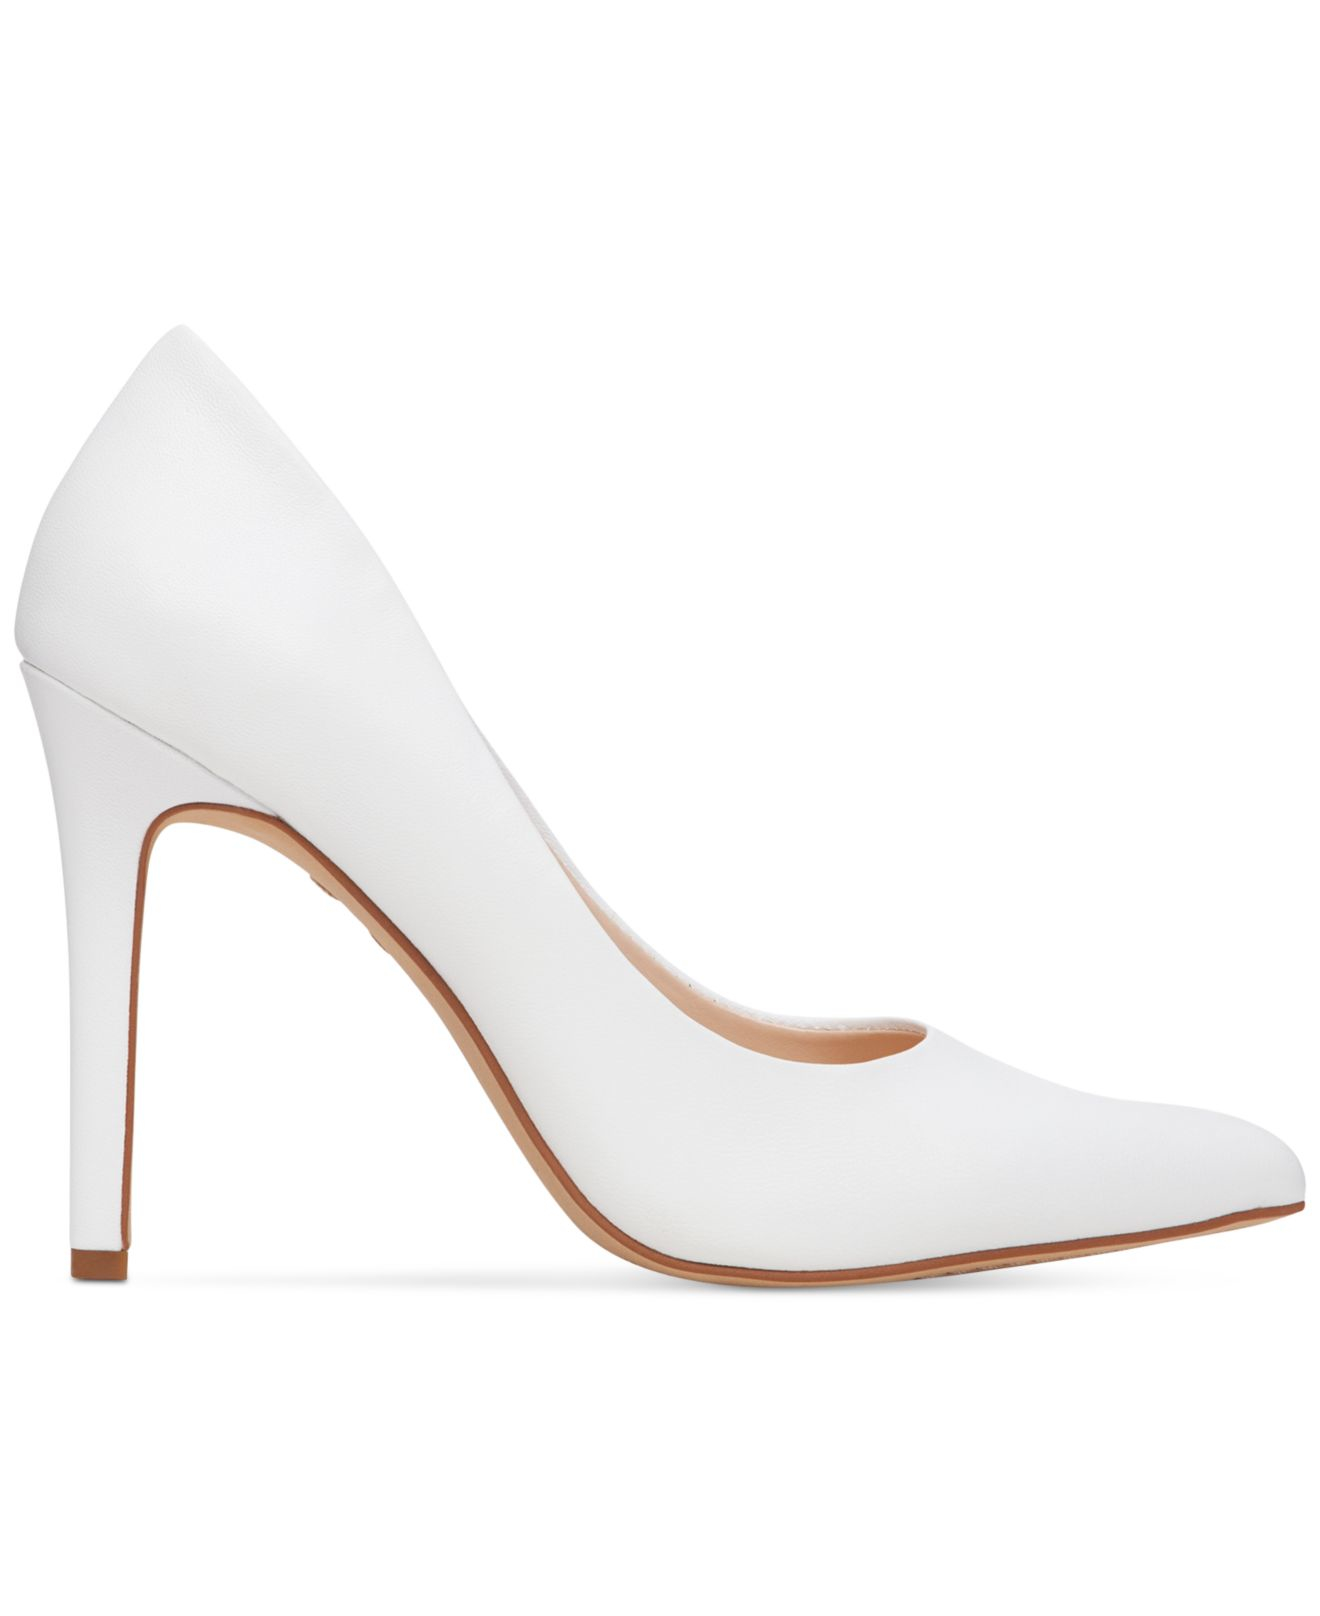 Vince Camuto Leather Kain Pointed Toe